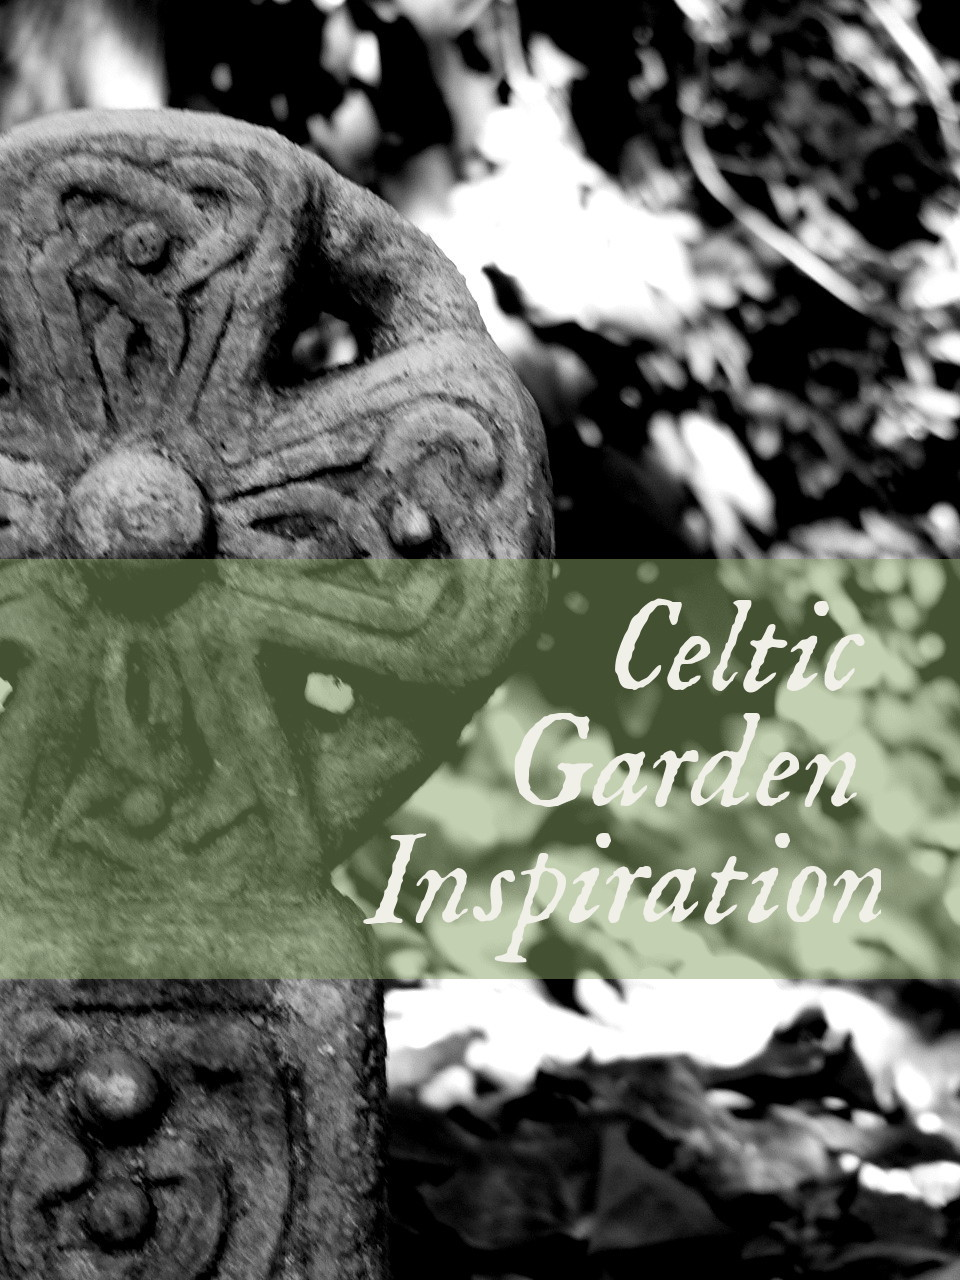 St Patrick's Day Celtic Garden Inspiration